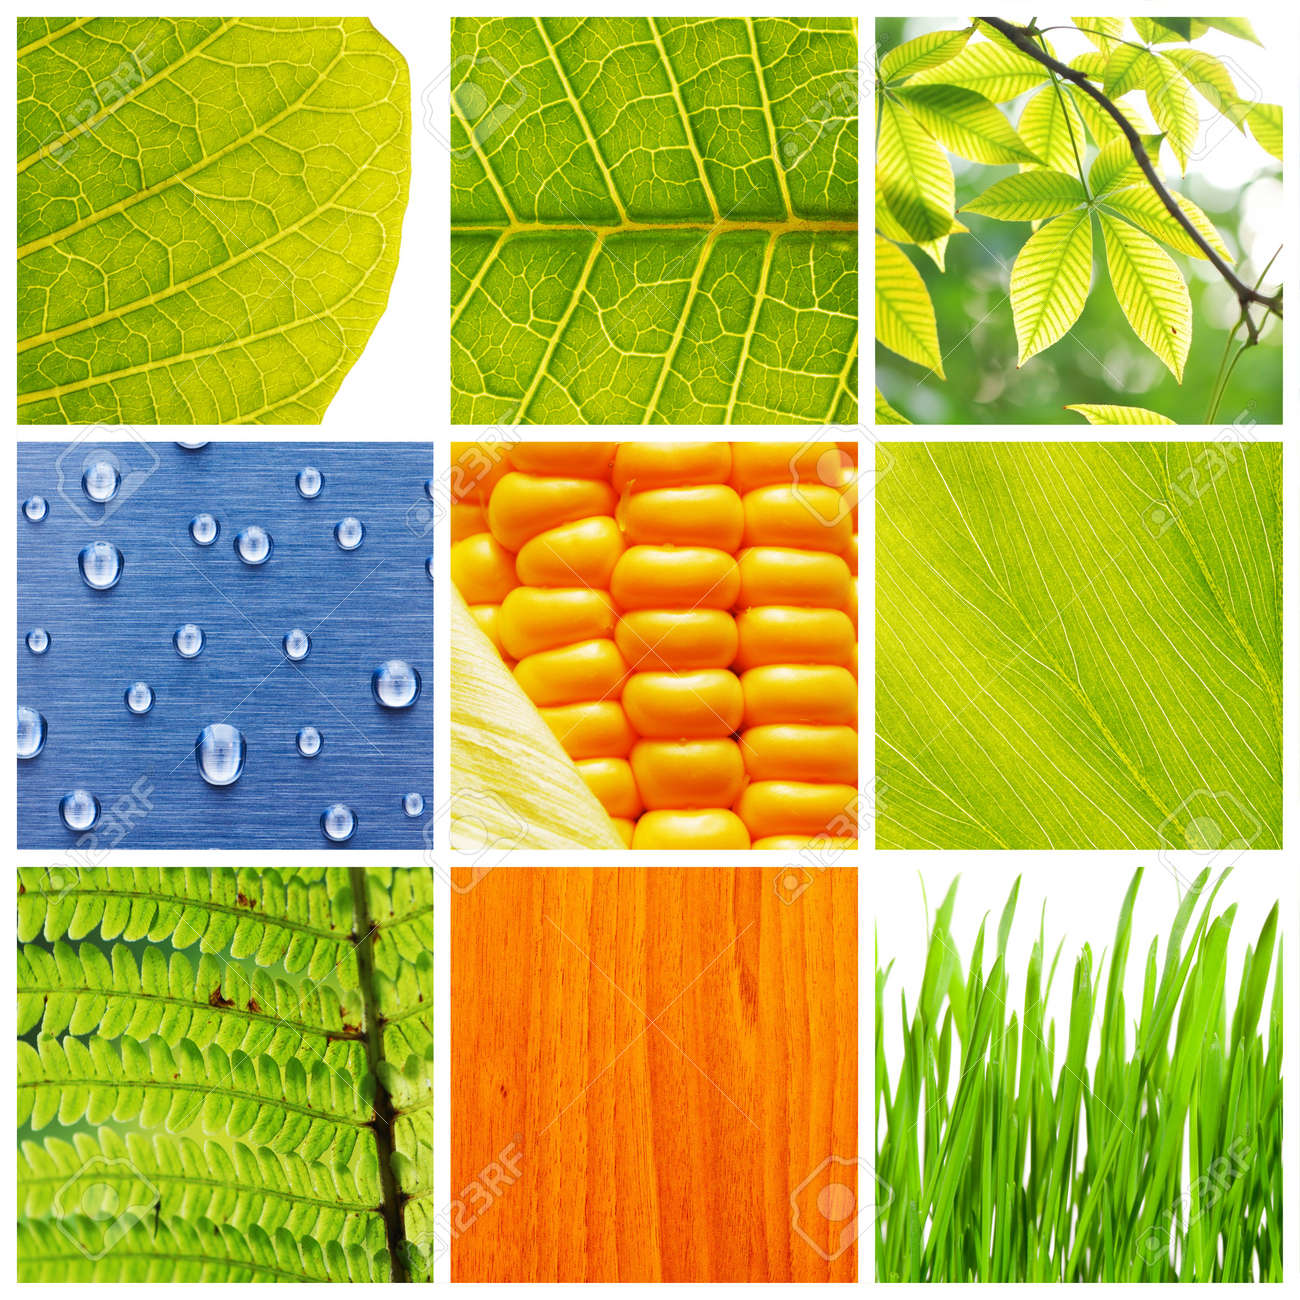 Collage made of different nature backgrounds Stock Photo - 5054037